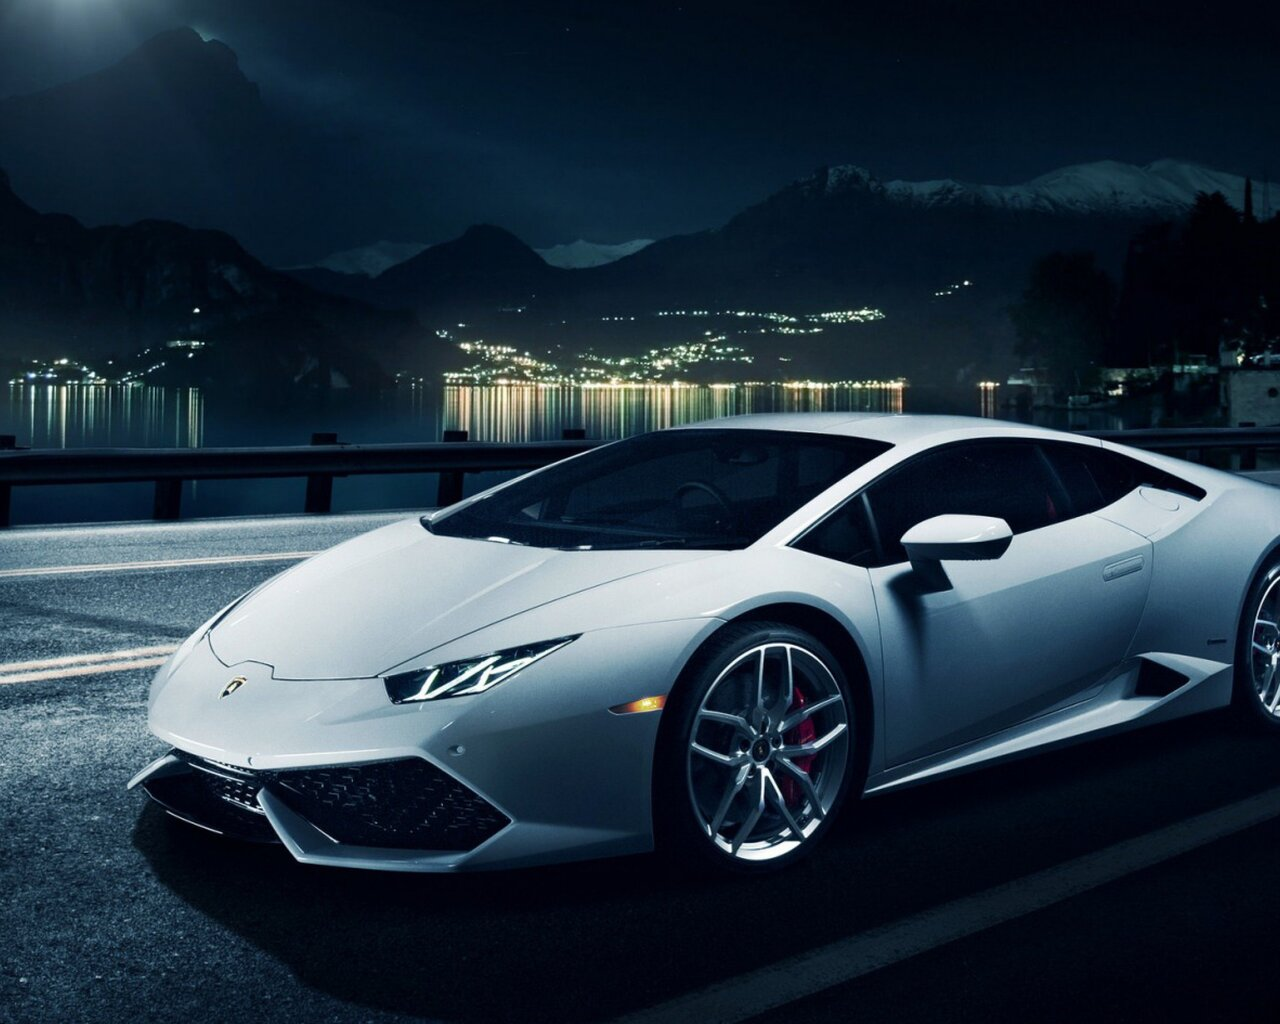 1280x1024 lamborghini huracan hd 1280x1024 resolution hd. Black Bedroom Furniture Sets. Home Design Ideas